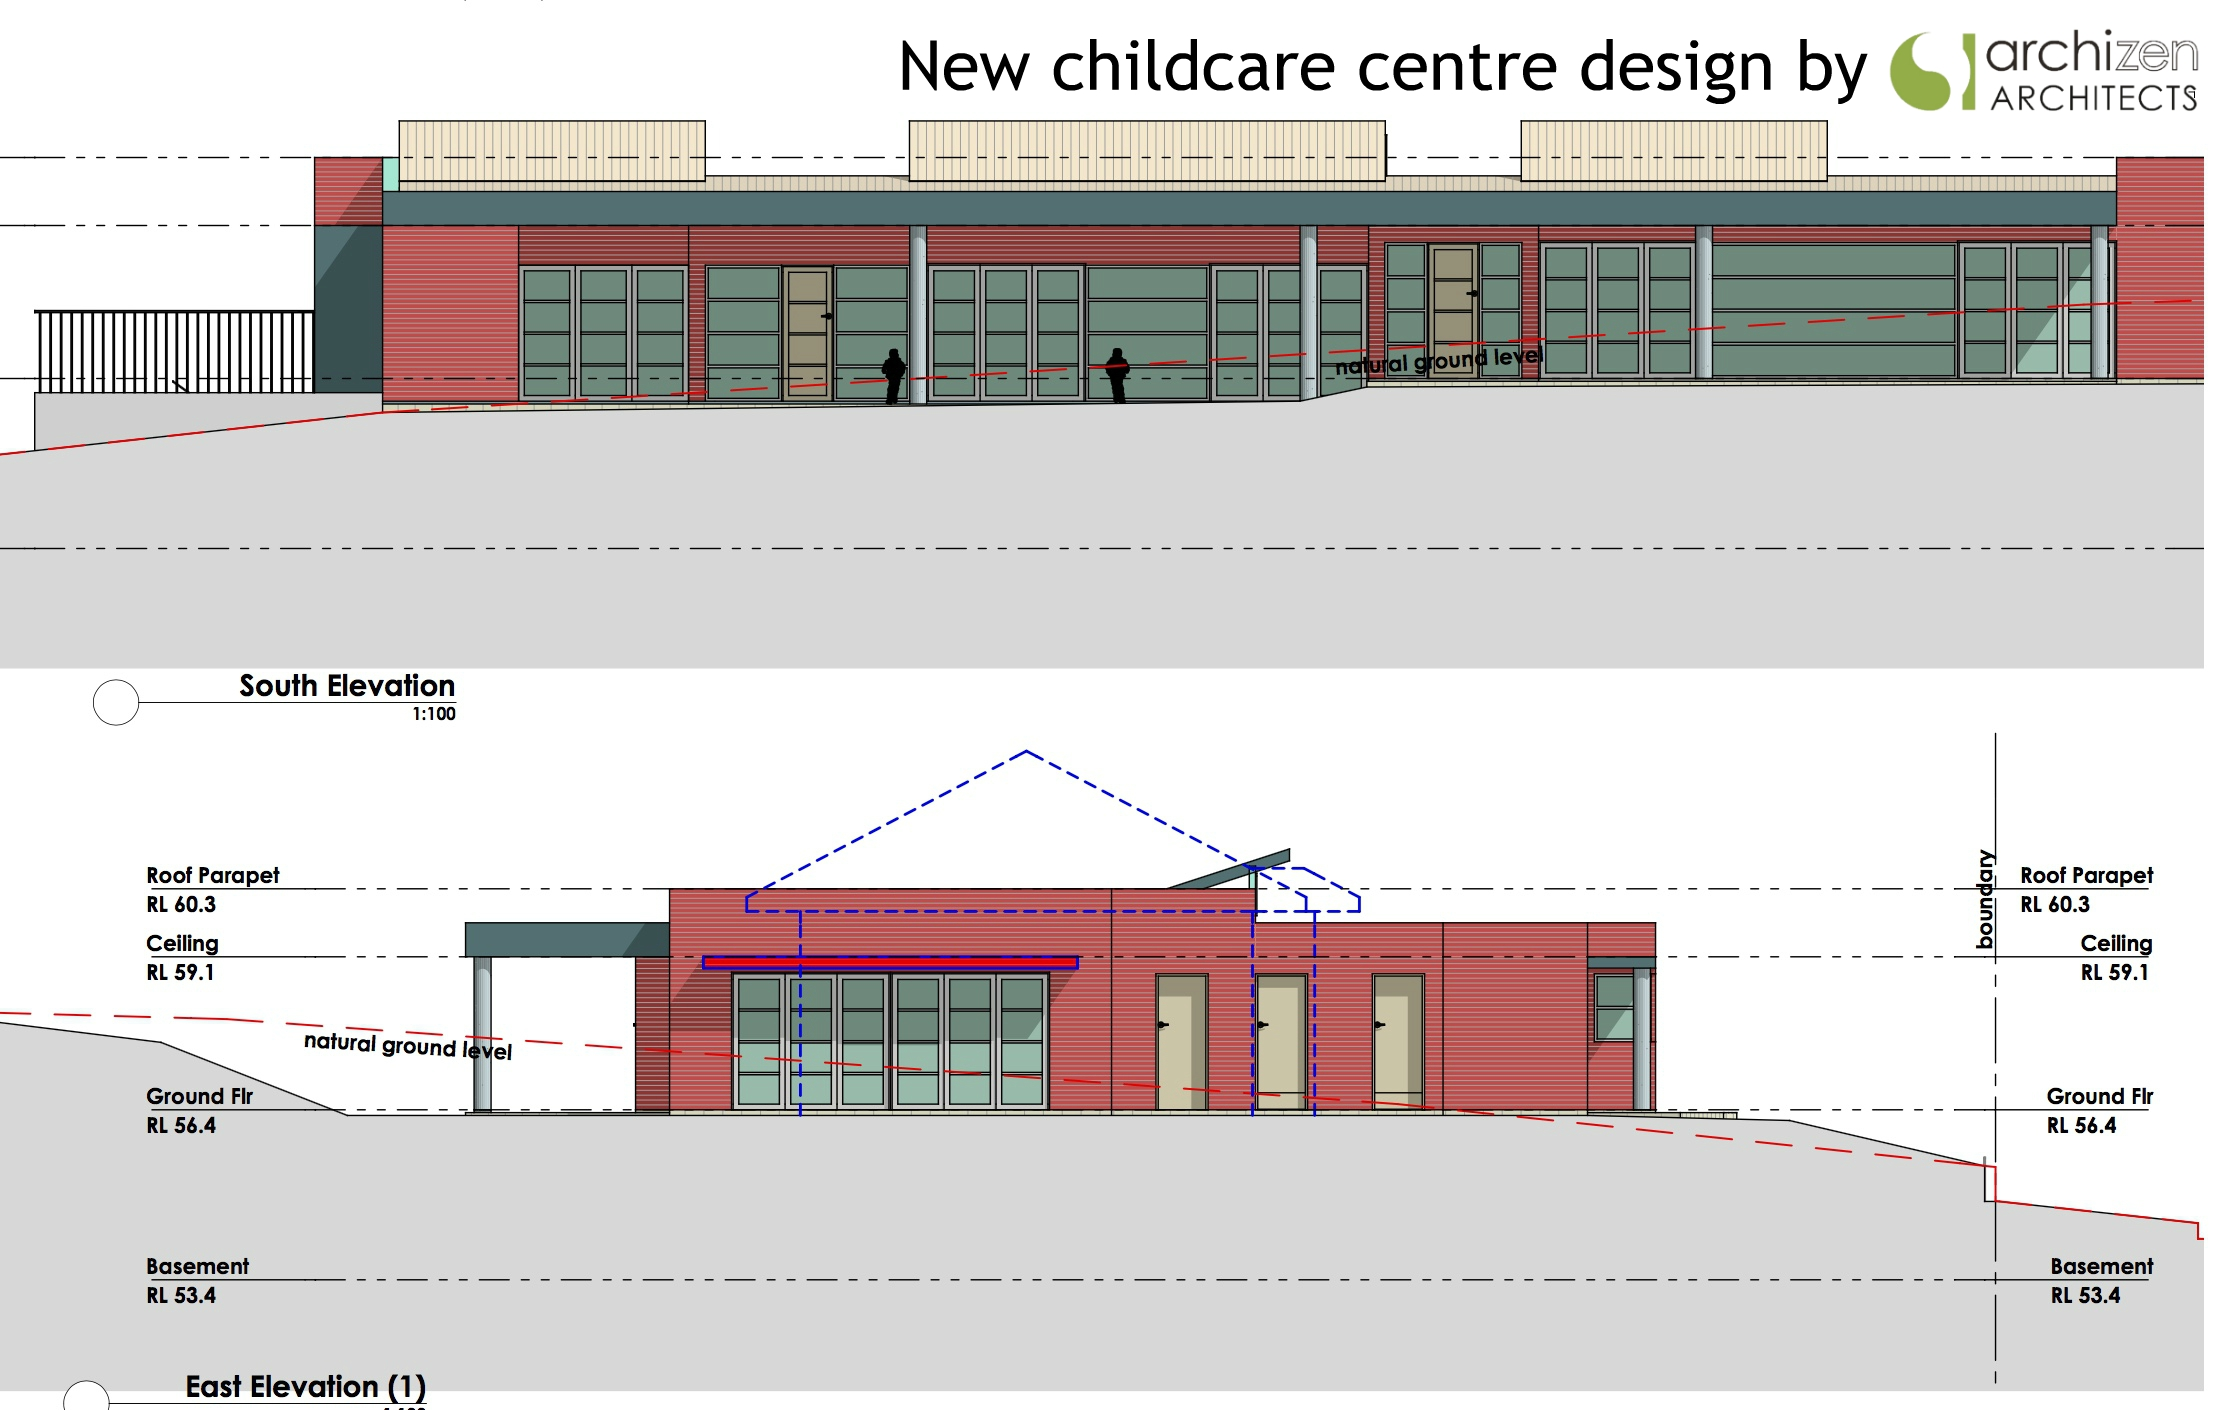 Archizen Architects New Childcare Centre design Pre Schools Early learning Centre Education kindergarten architectural design Sydney Dapto Wollongong